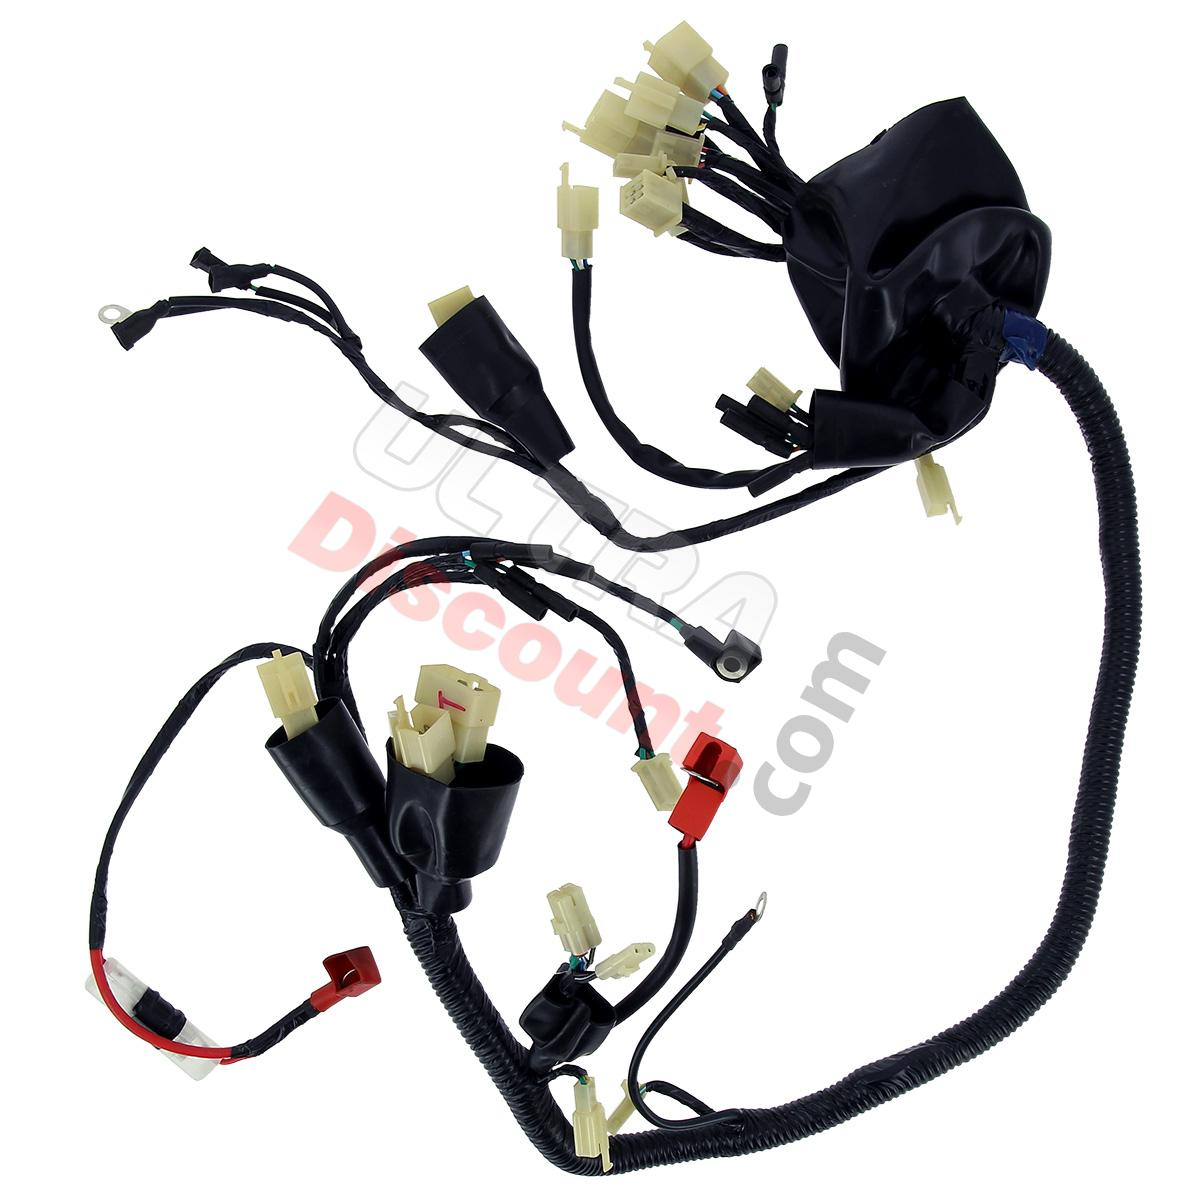 hight resolution of wire harness for atv shineray quad 200cc stiie b shineray parts atv 200stiie and